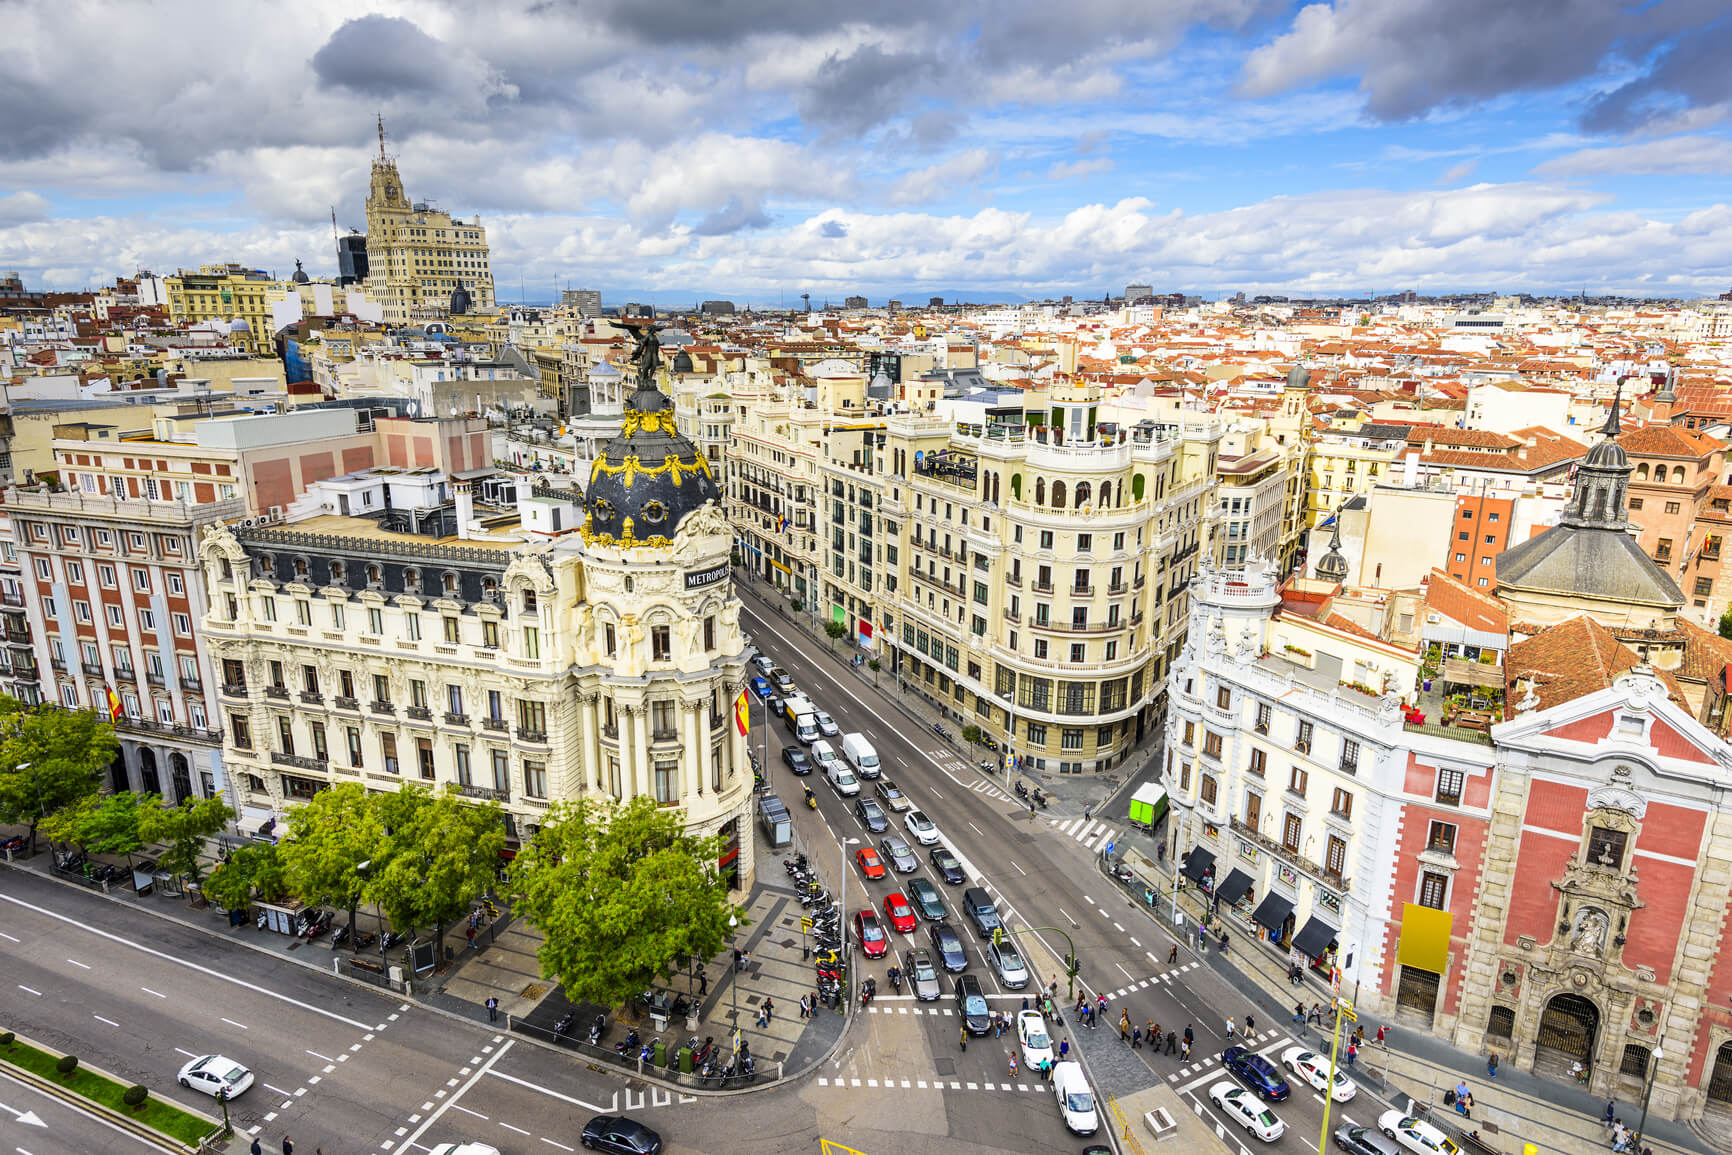 Non-stop from Dakar, Senegal to Madrid, Spain for only $338 USD roundtrip